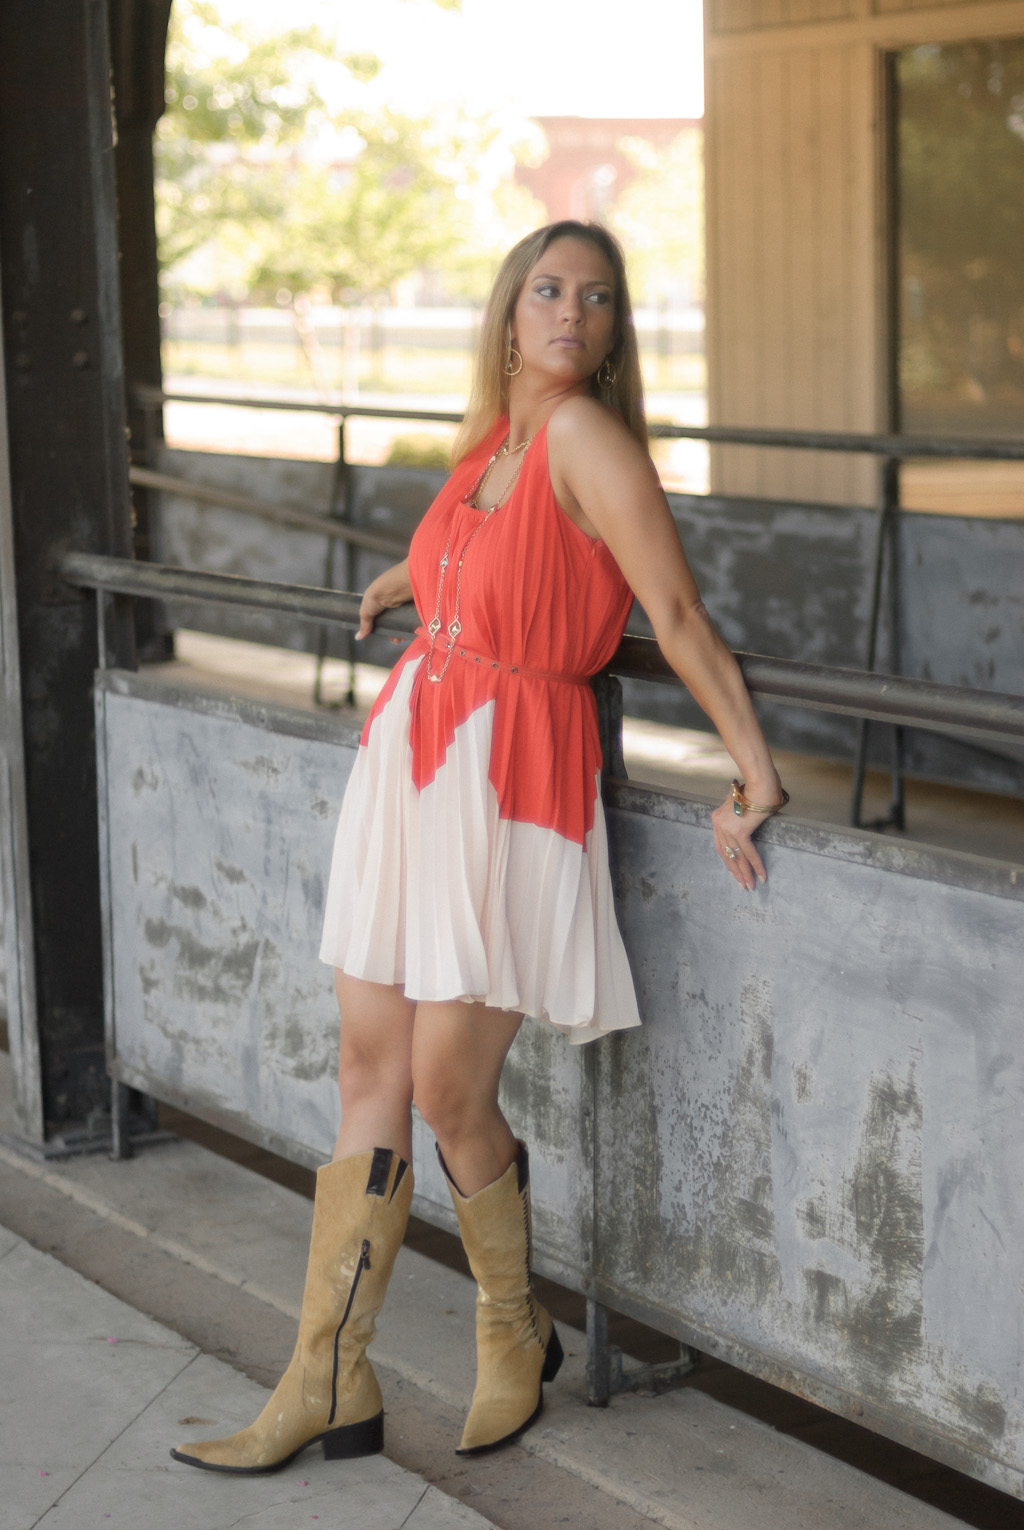 Make It Work Molly's Southern Style | The Sparkle of the ...